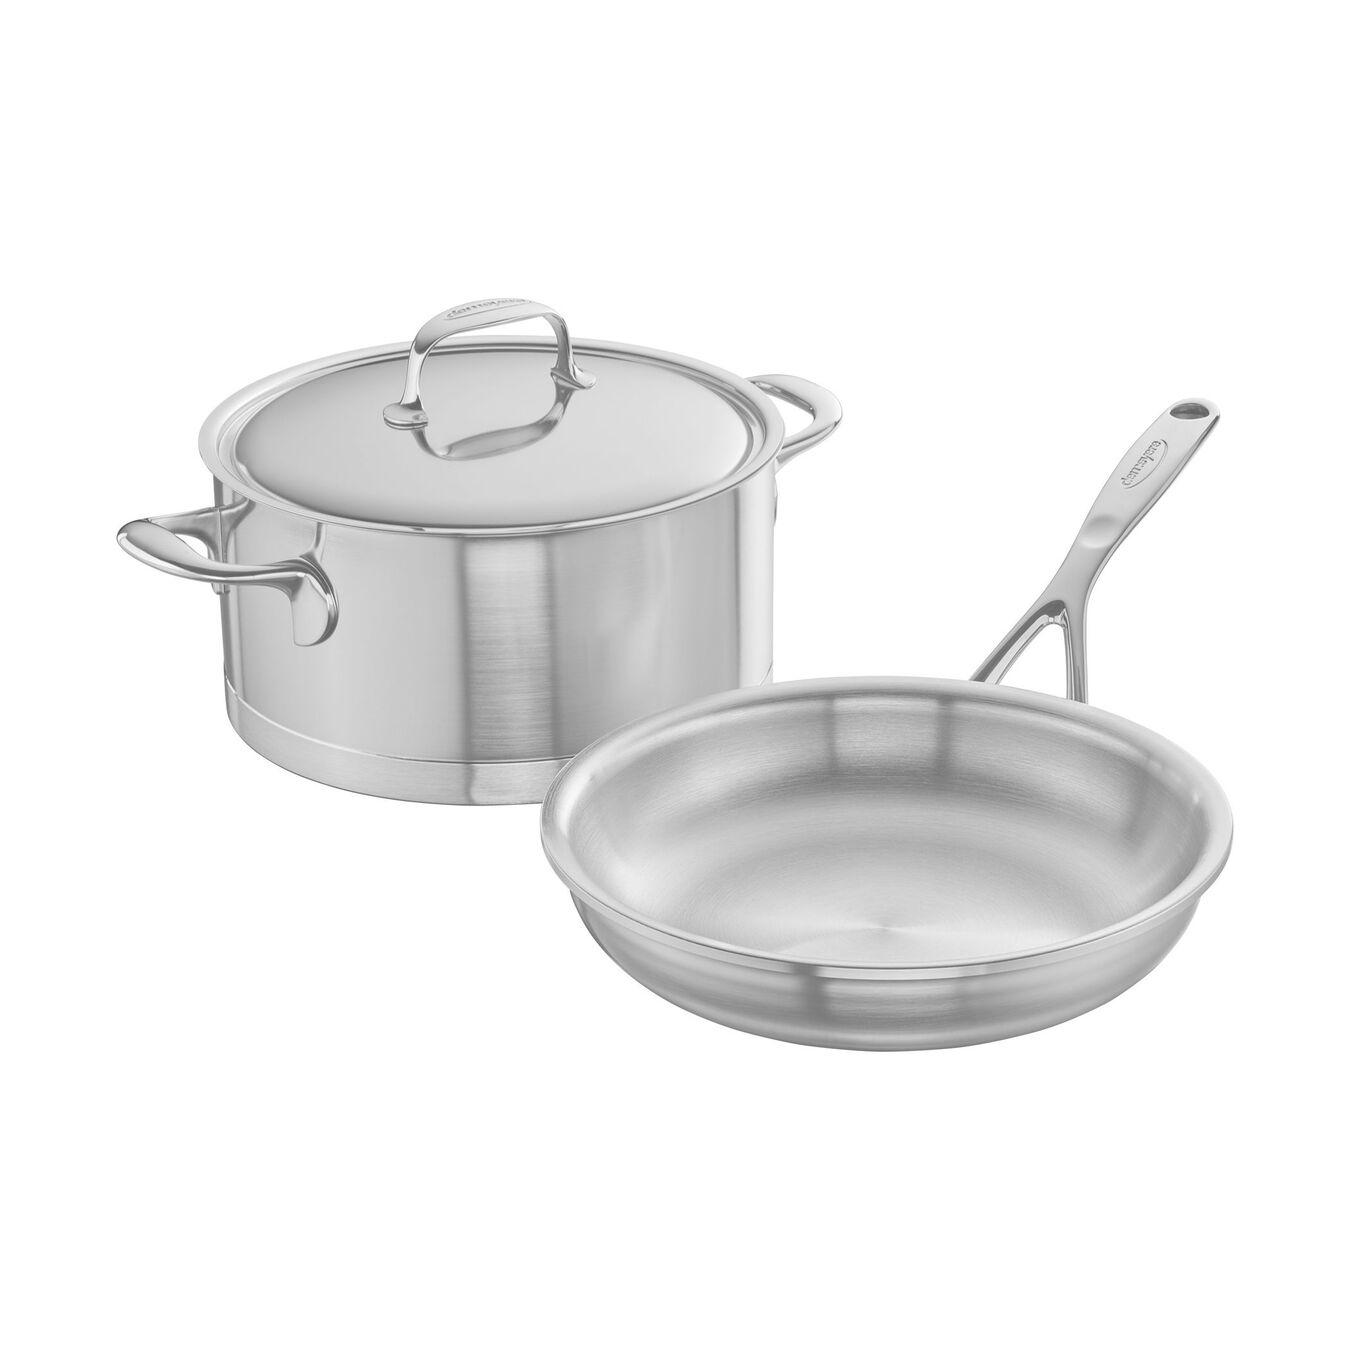 3-pc Stainless Steel Cookware Set,,large 1